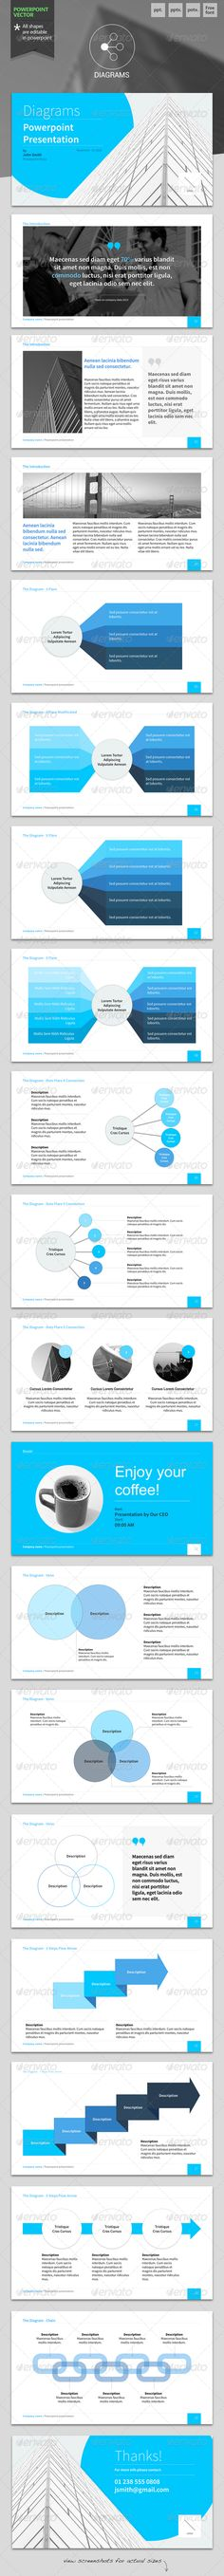 Diagrams - Powerpoint Template #GraphicRiver Shape your ideas into effective presentation!